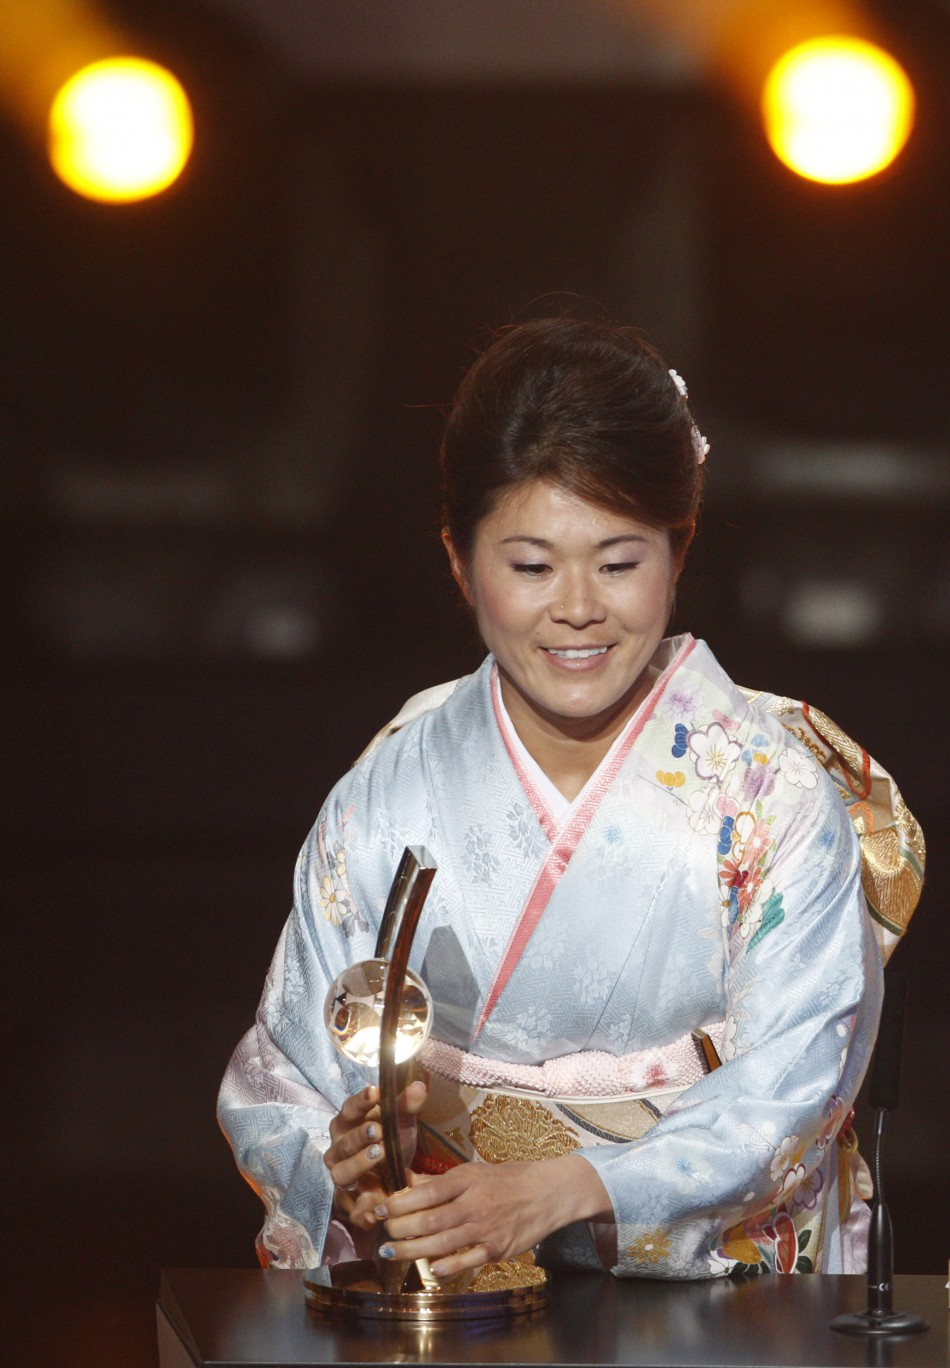 Sawa wins the Women's Player of the Year